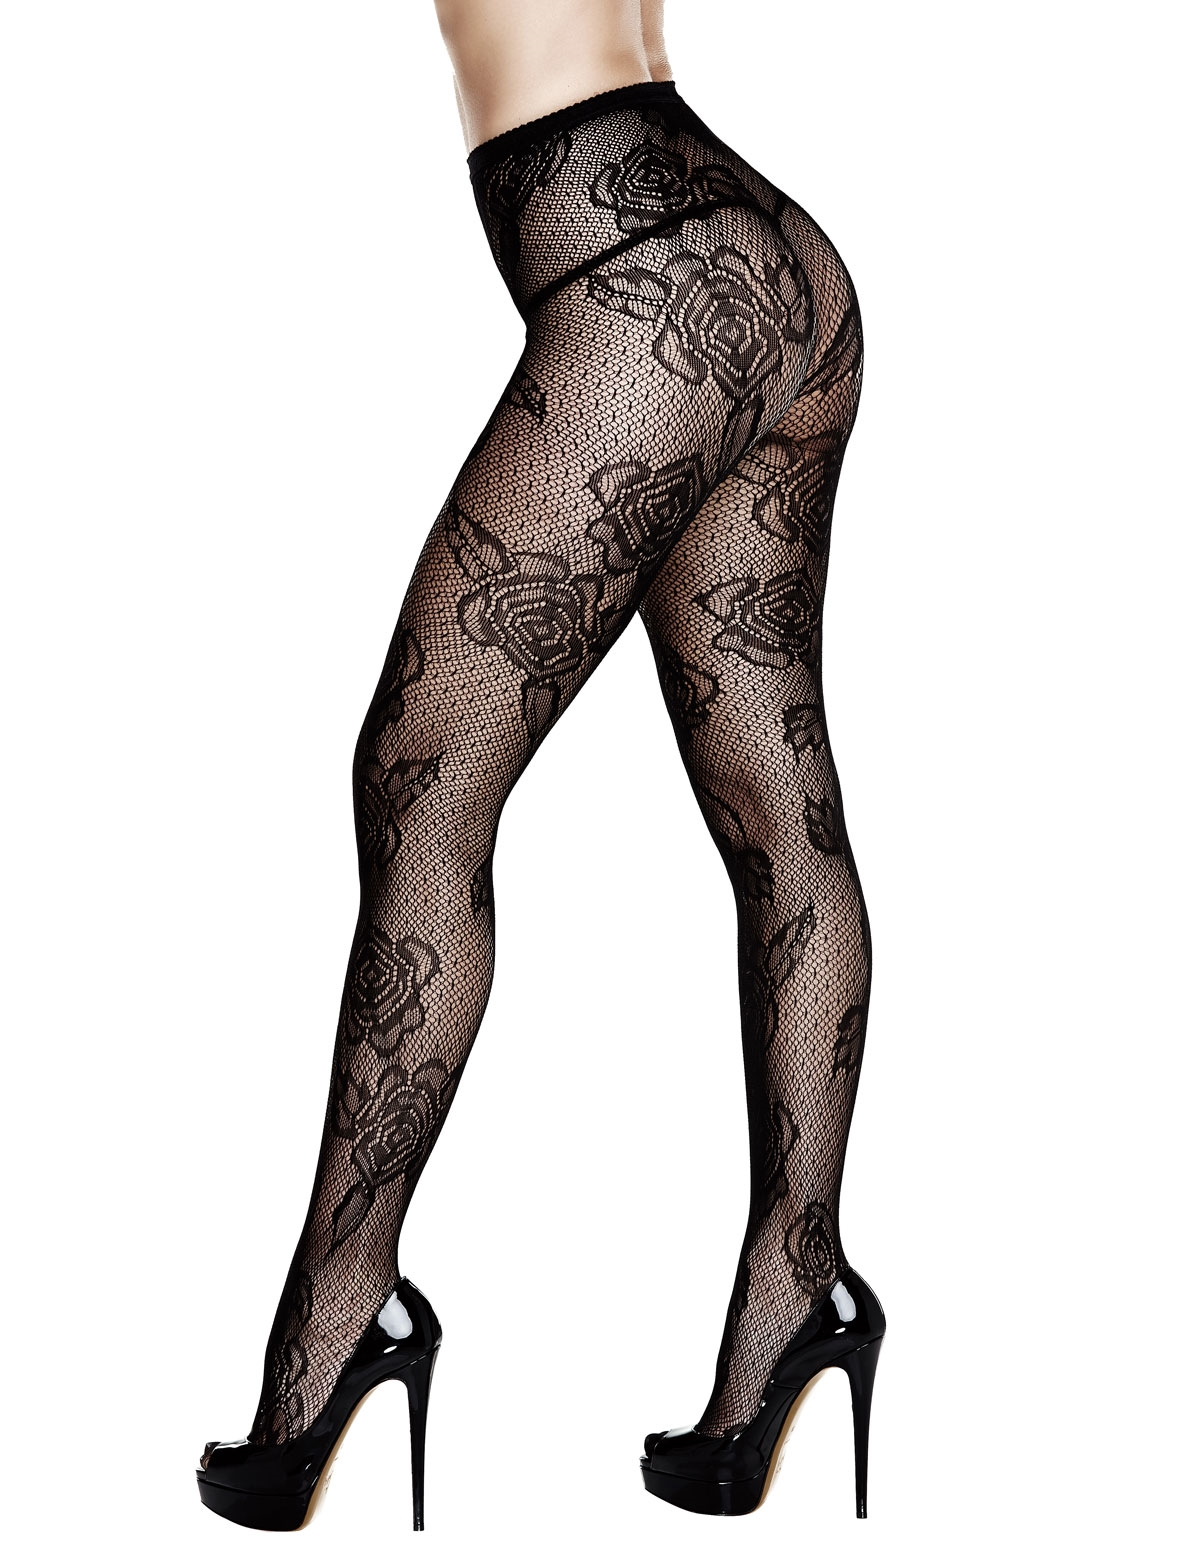 French Rose Pantyhose